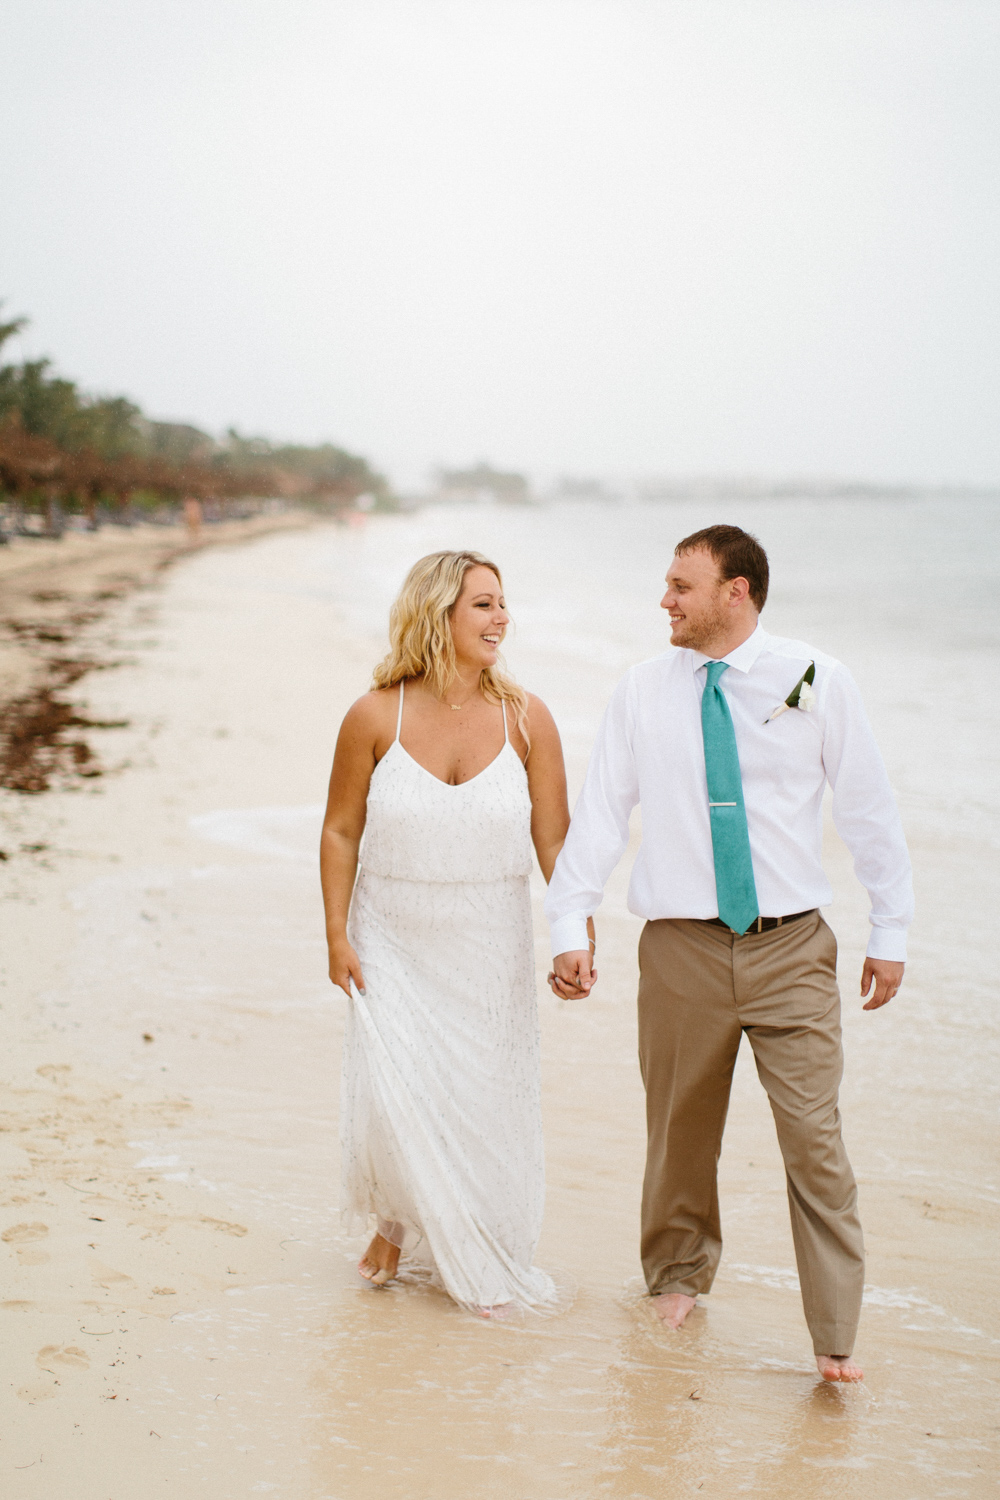 MichaelLiedtke_Destination_Wedding_Photographer_ClaireTyler_14.jpg